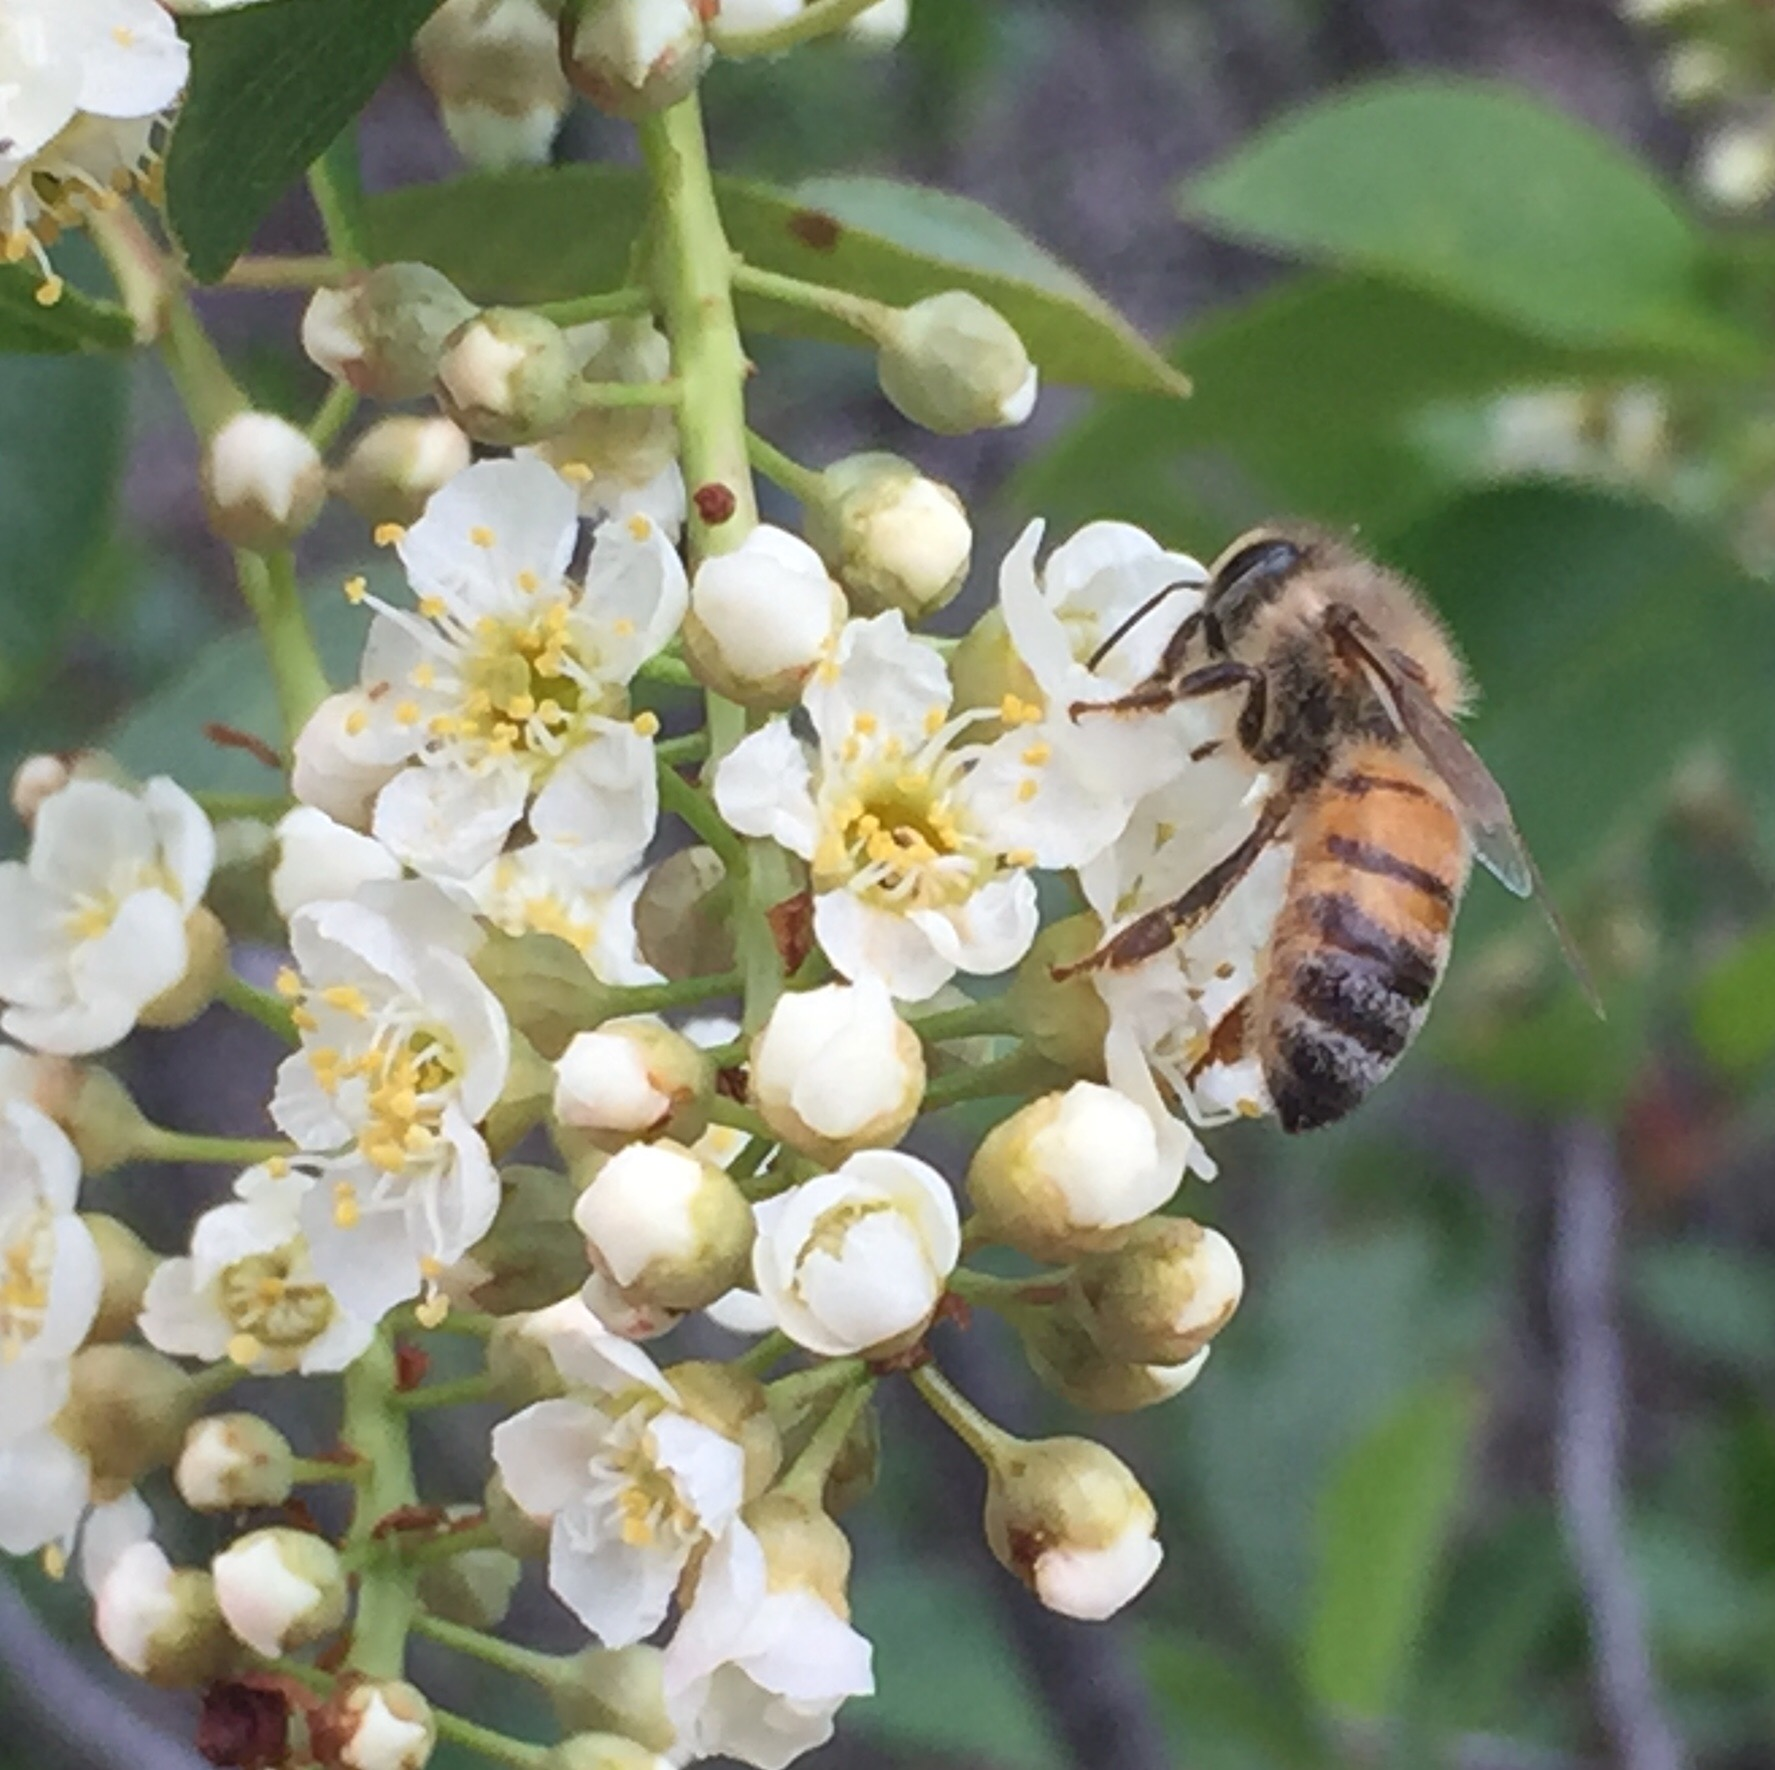 Honey bee on chokeberry flowers